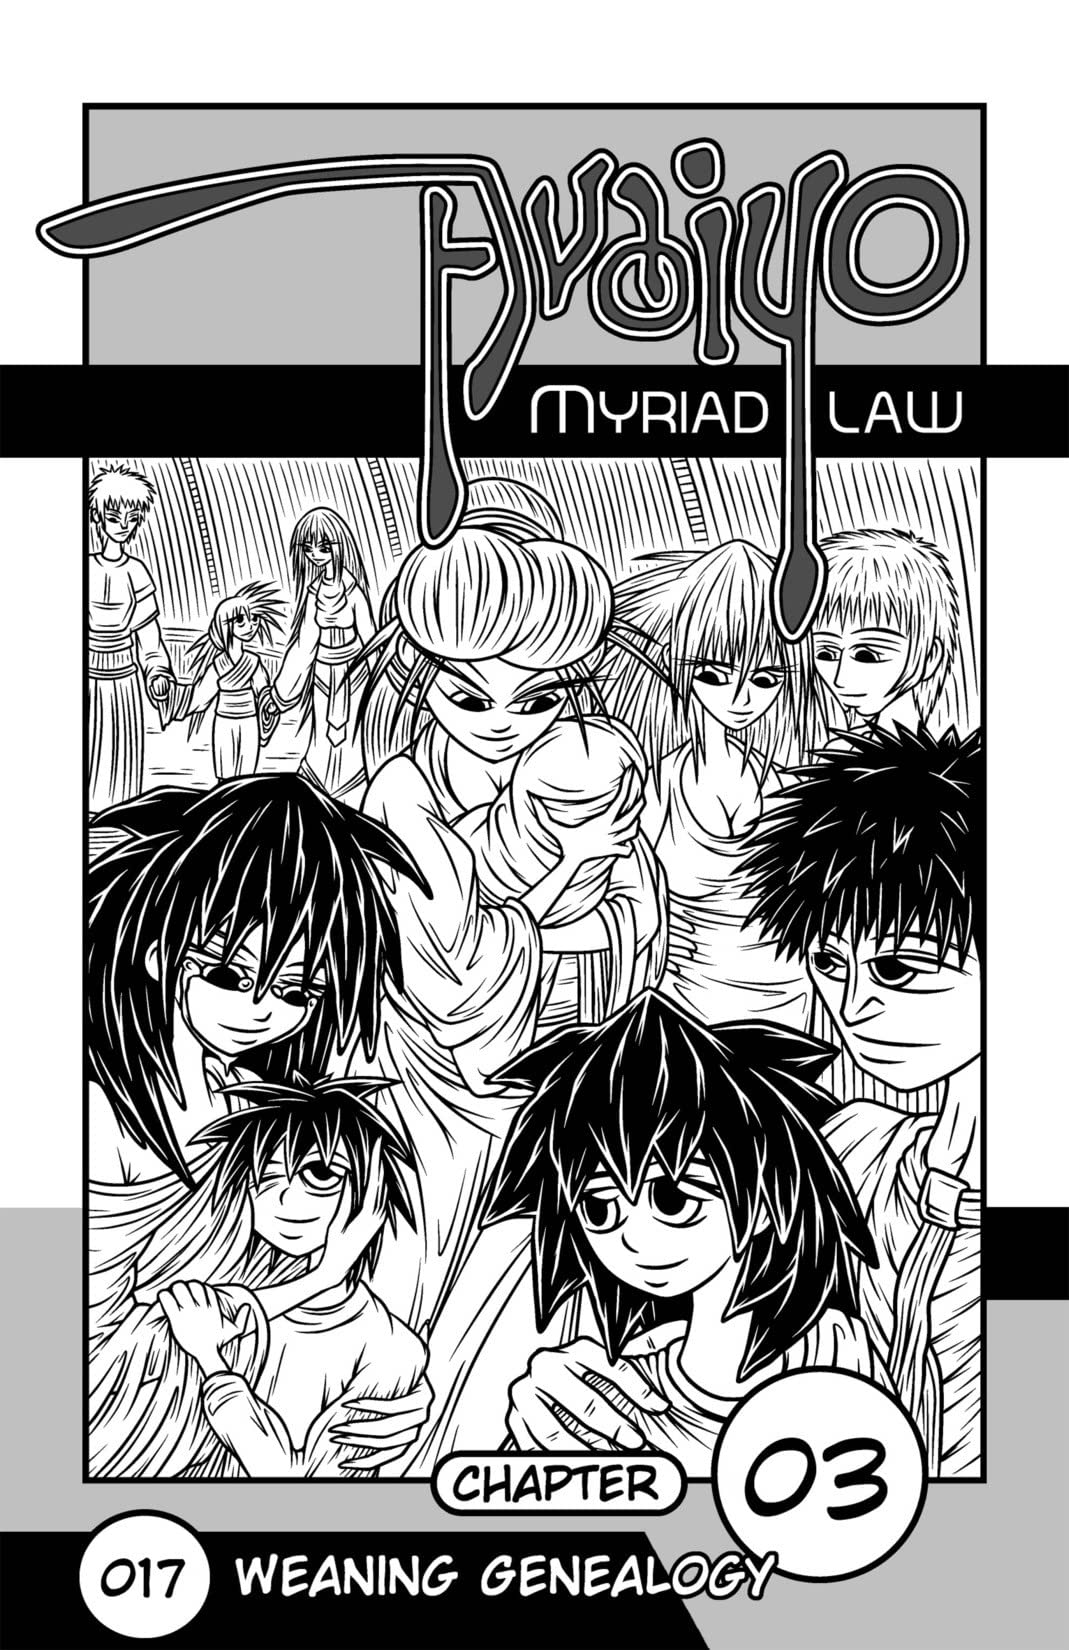 Avaiyo: Myriad Law #017